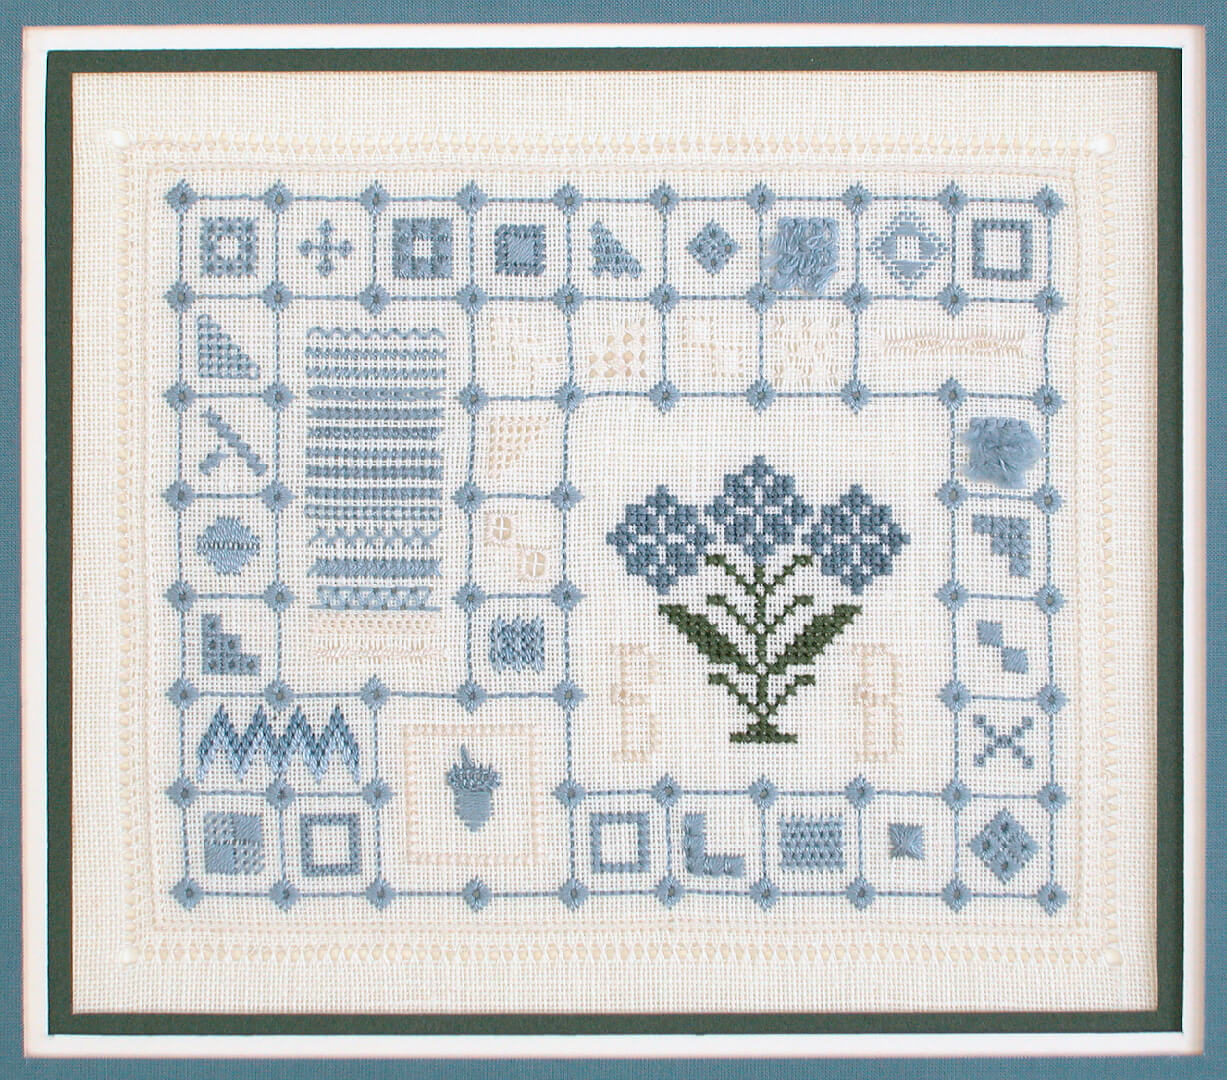 The Flax Sampler